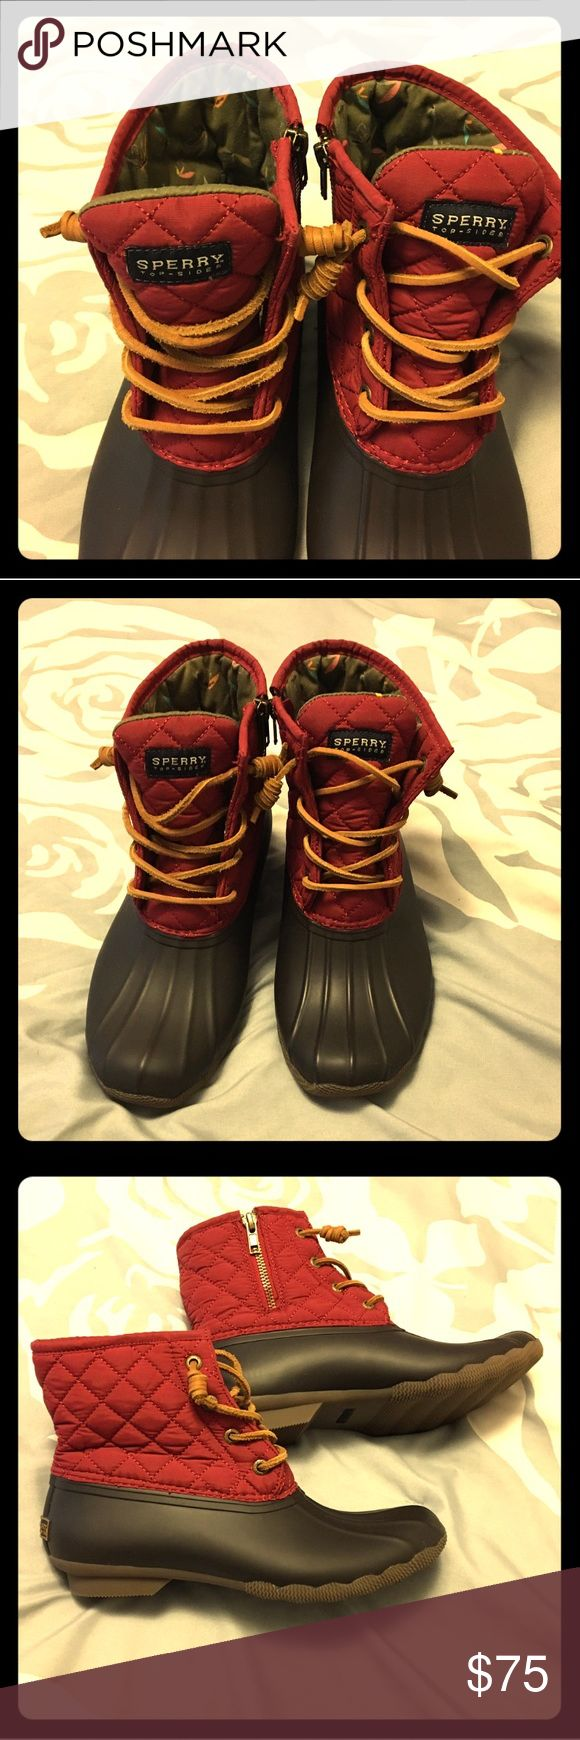 Sperry Top-Sider red boots for women size 7. CUTE! Very cute Sperry Top-Sider boots for women size 7.  These boots are a true to size. Brand new. Red and dark brown with tan laces. Sperry Top-Sider Shoes Winter & Rain Boots